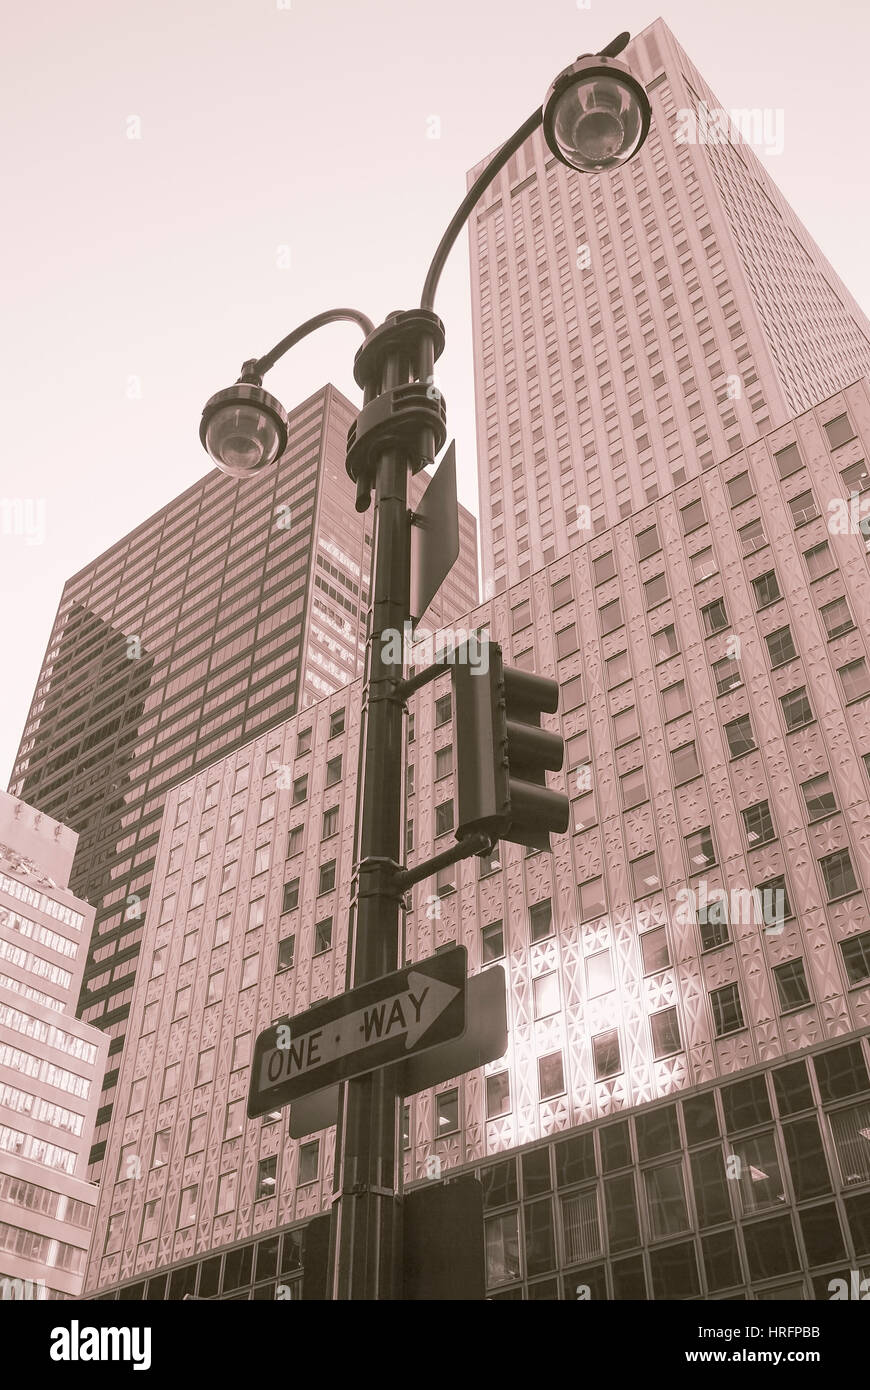 one-way traffic light with skyscrapers in New York City Stock Photo